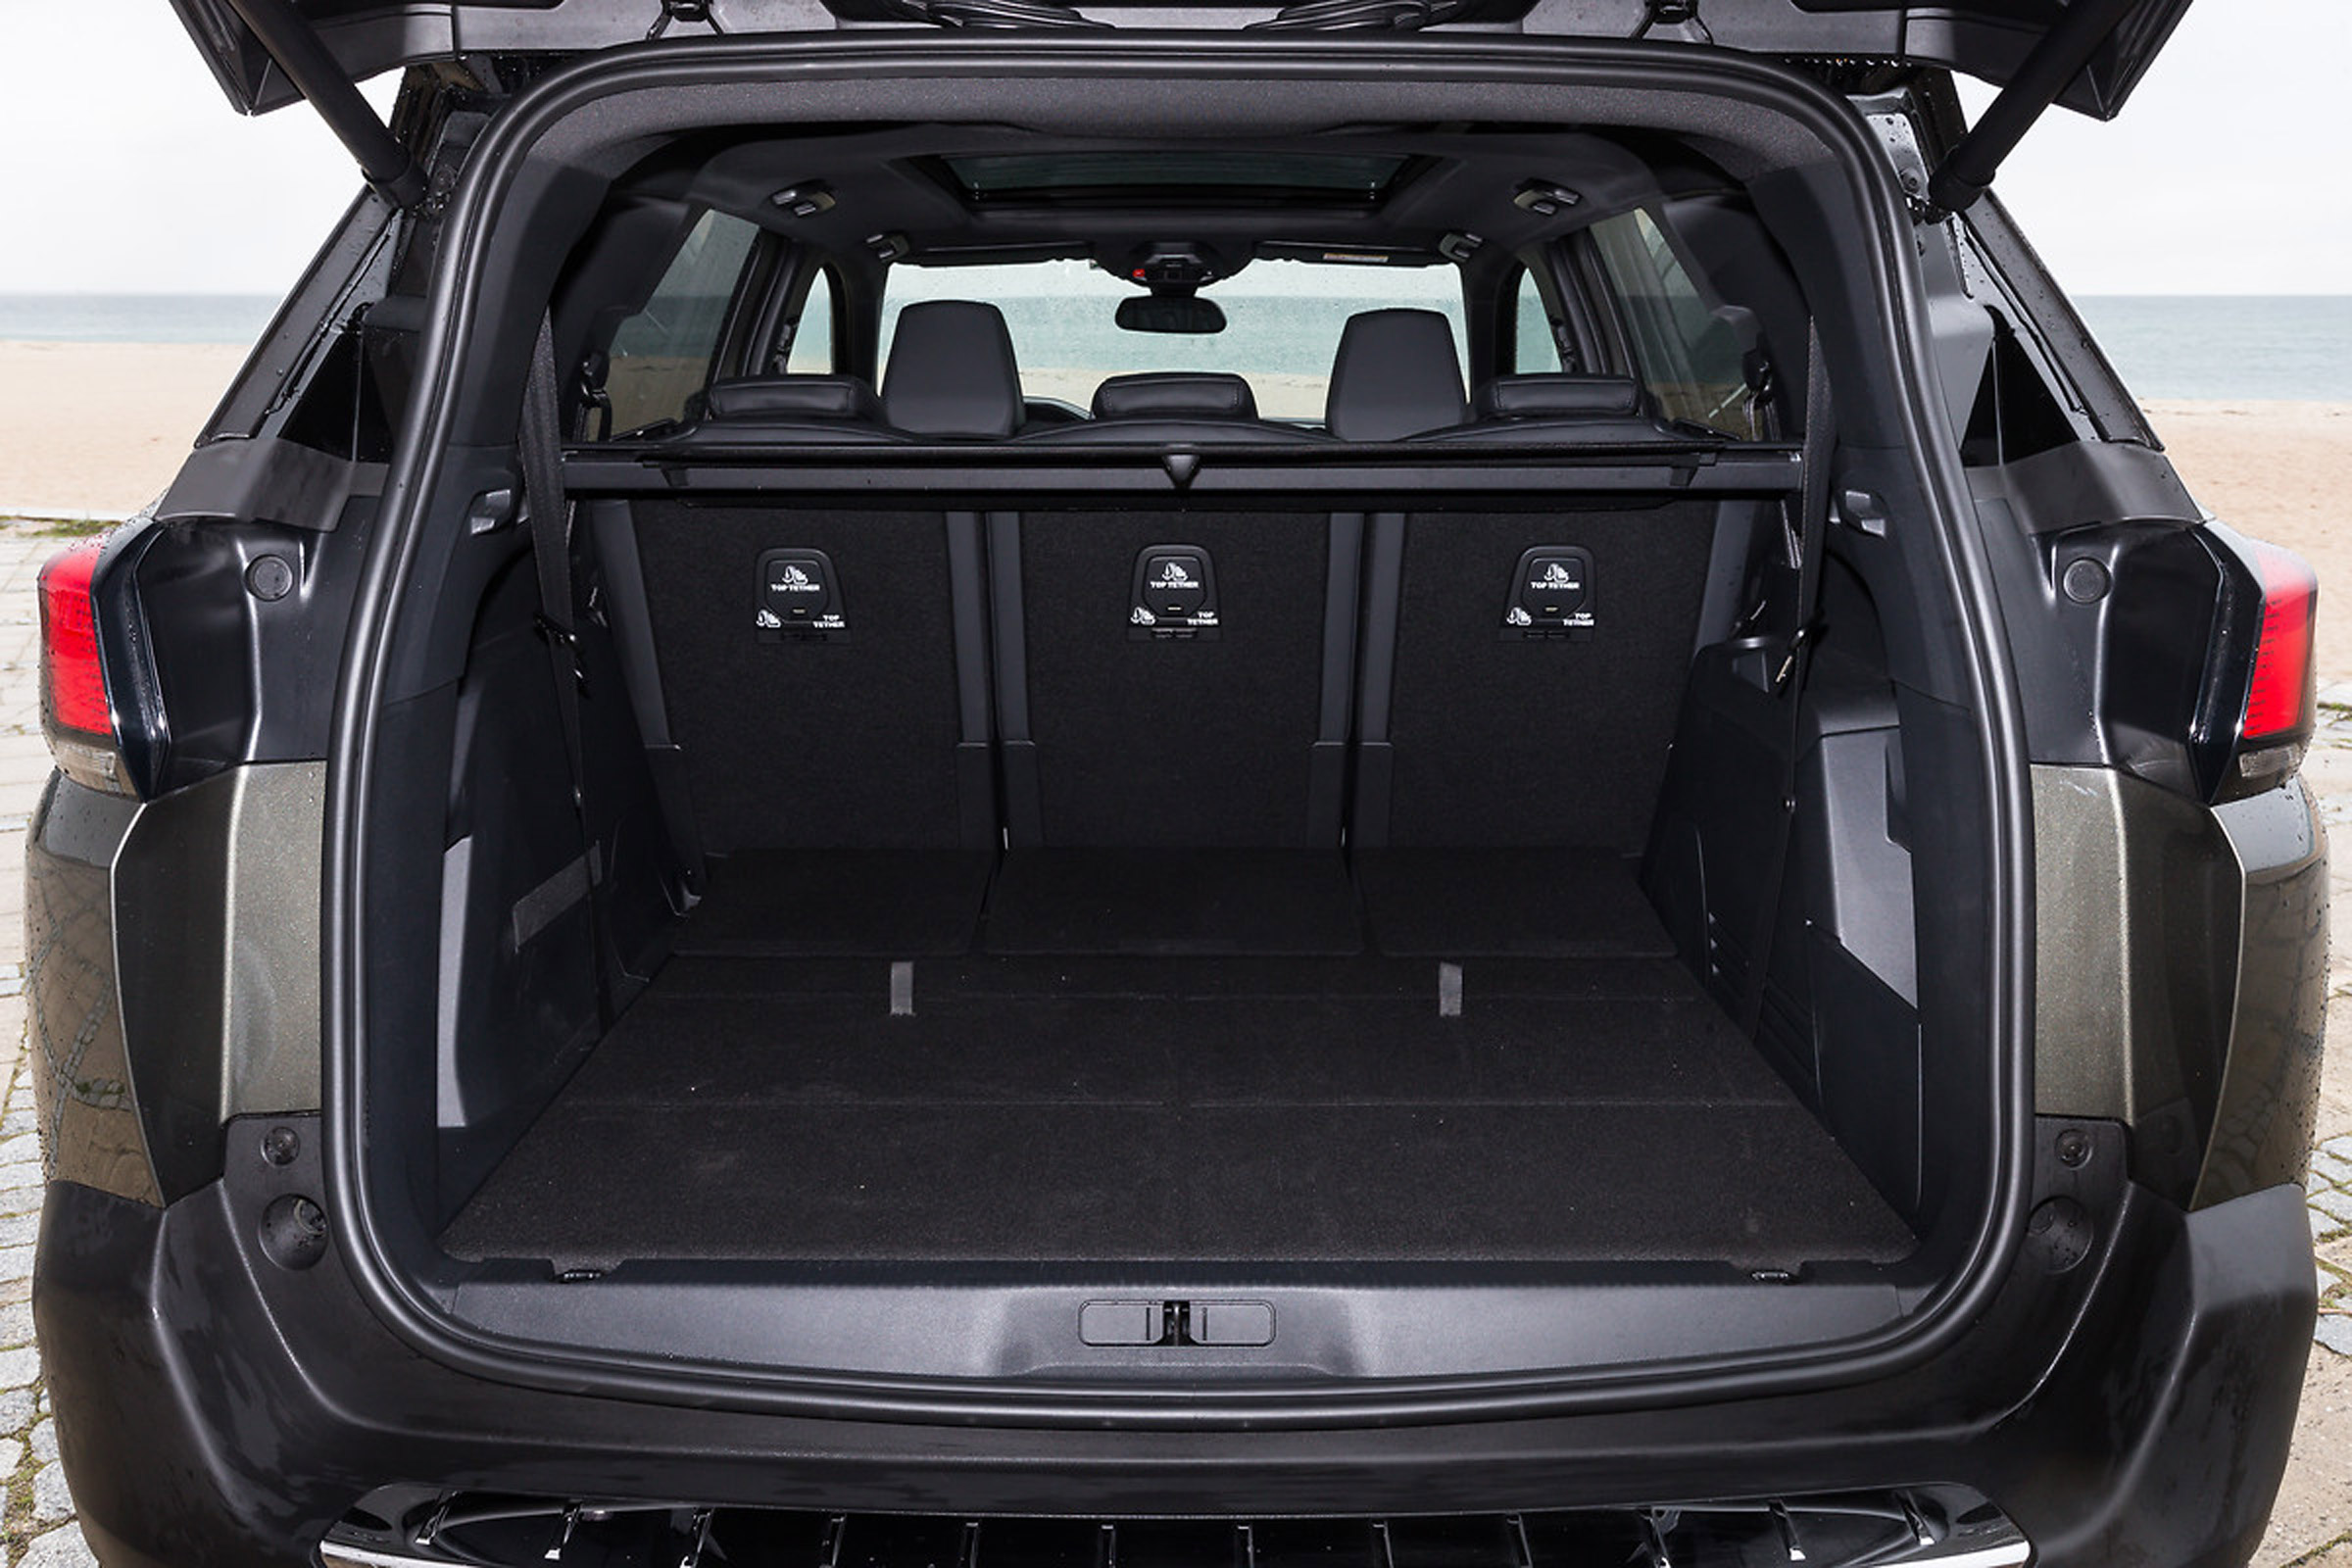 2017 Peugeot 5008 SUV Interior View Cargo Rear Seats Folded (View 8 of 18)